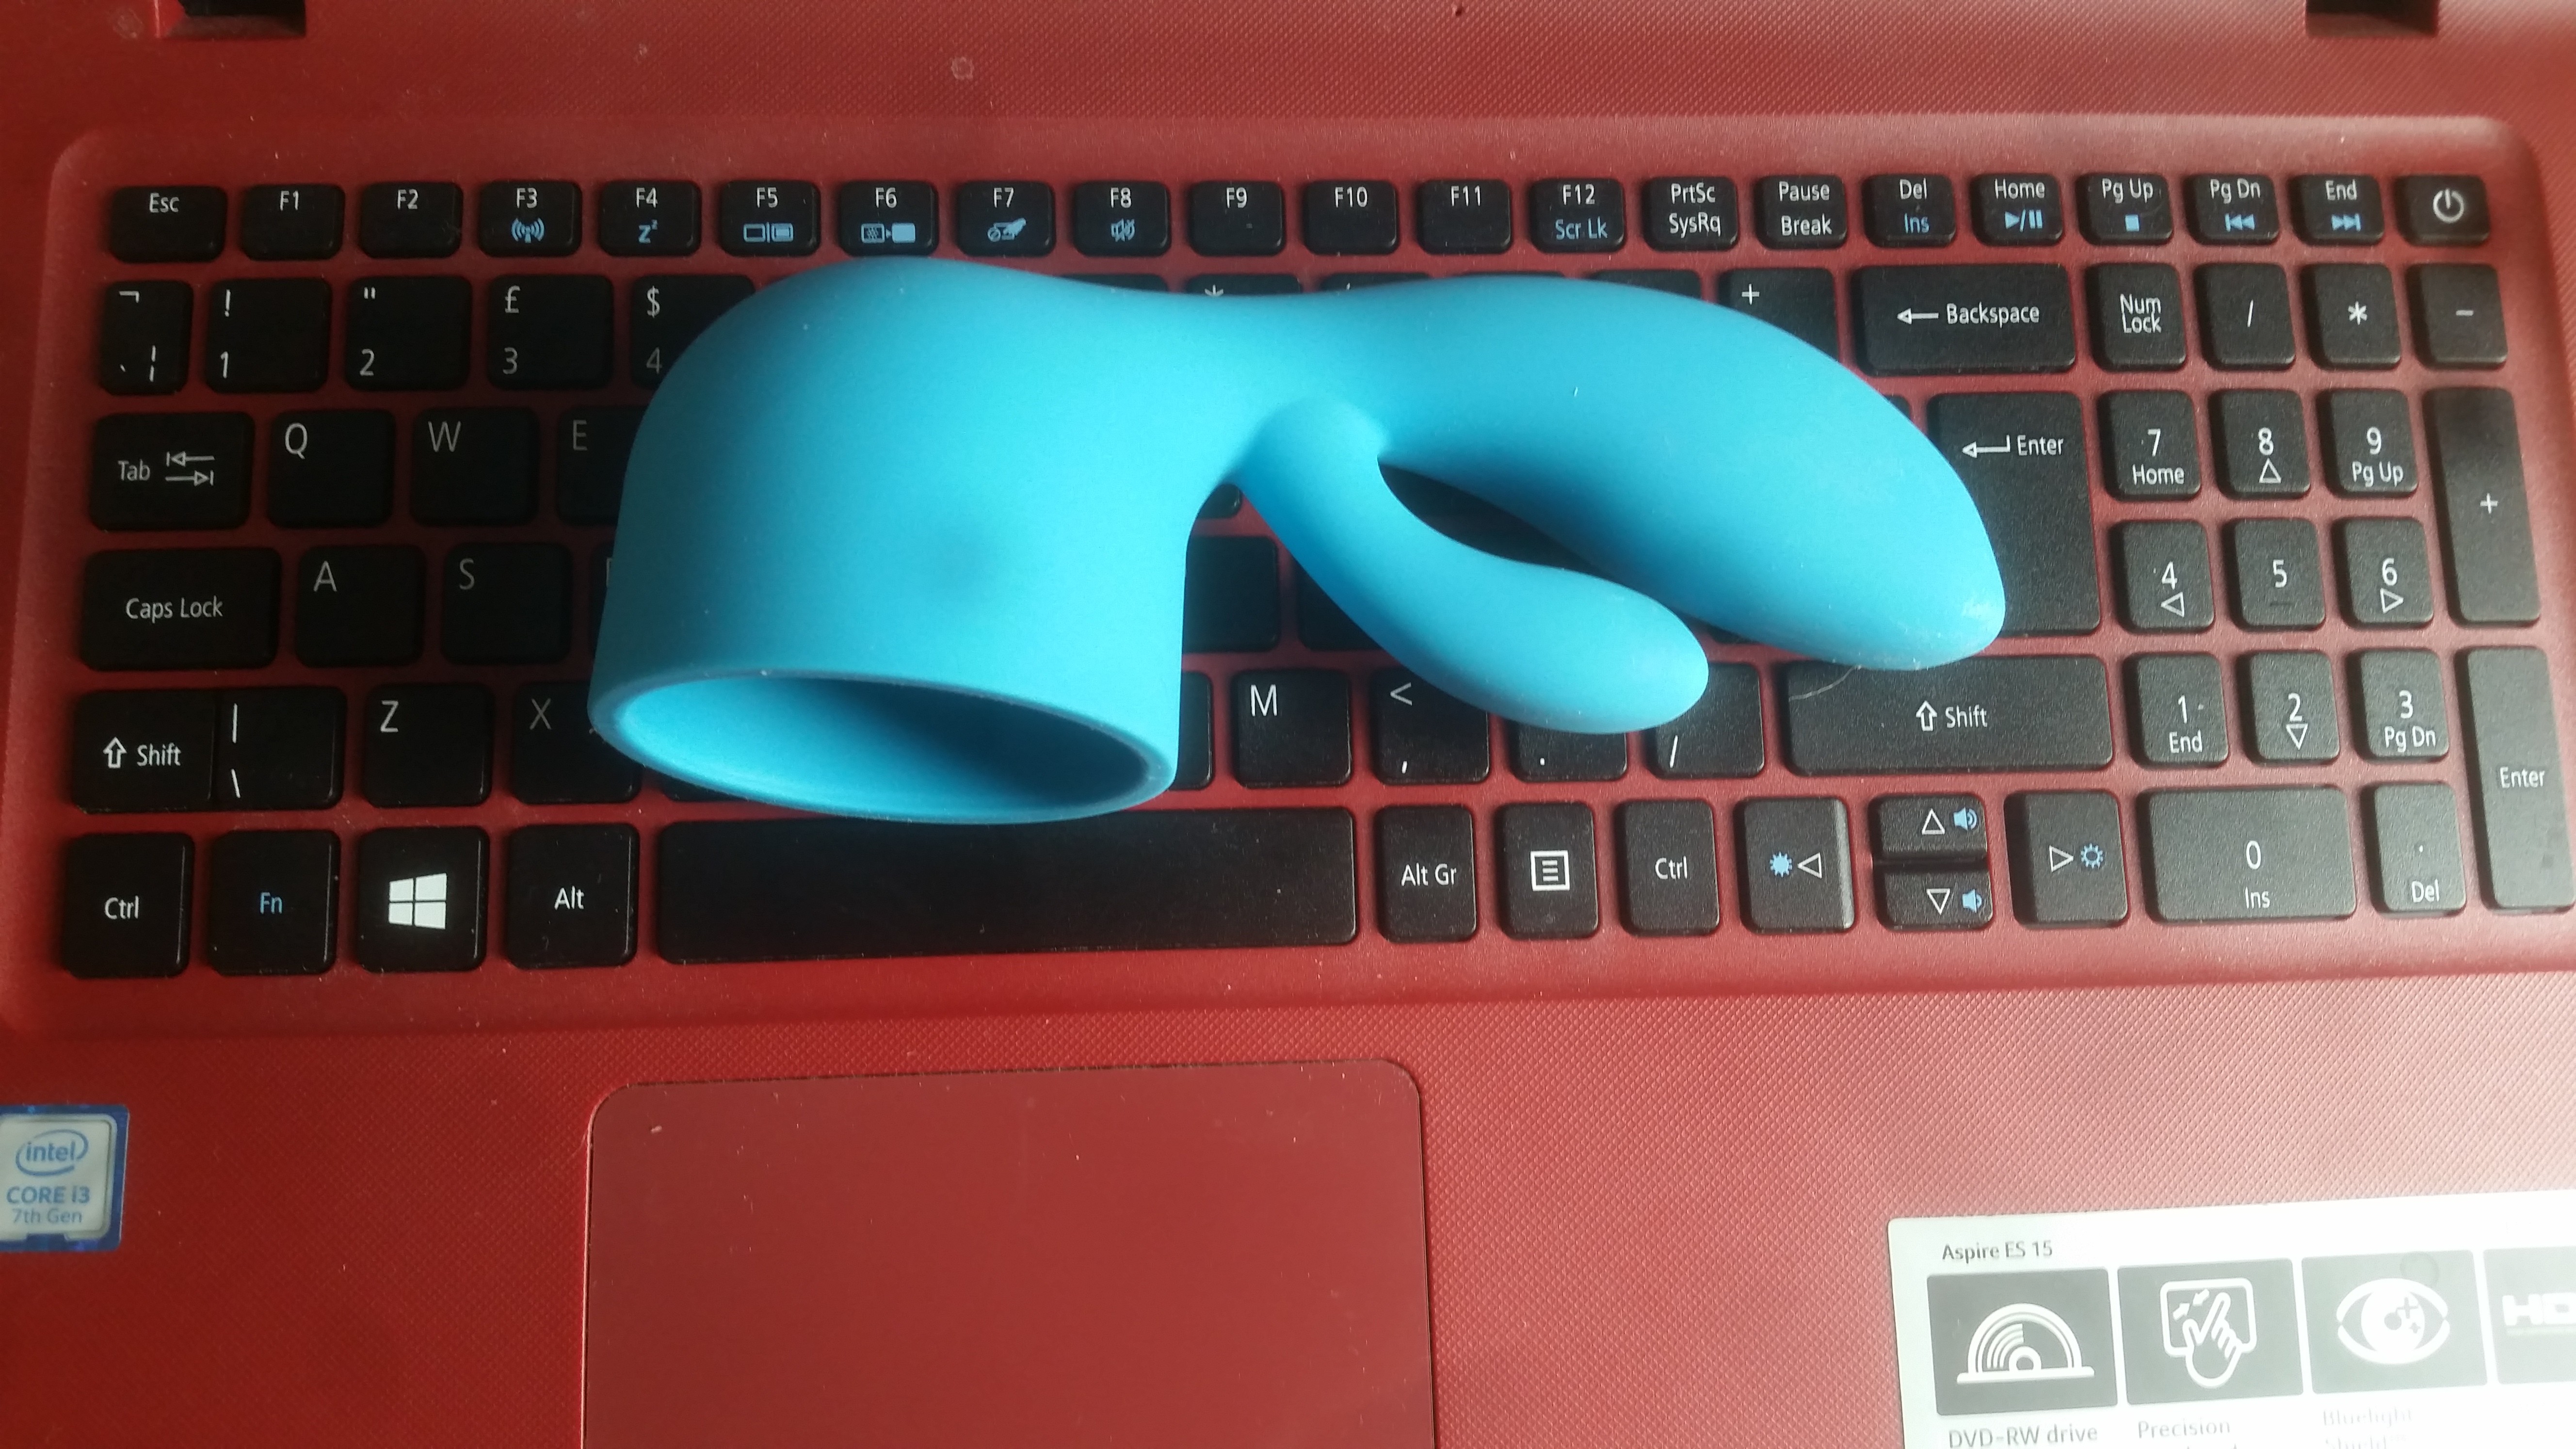 The bodywand blue silicone rabbit wand attachment sitting on a red and black laptop keyboard.